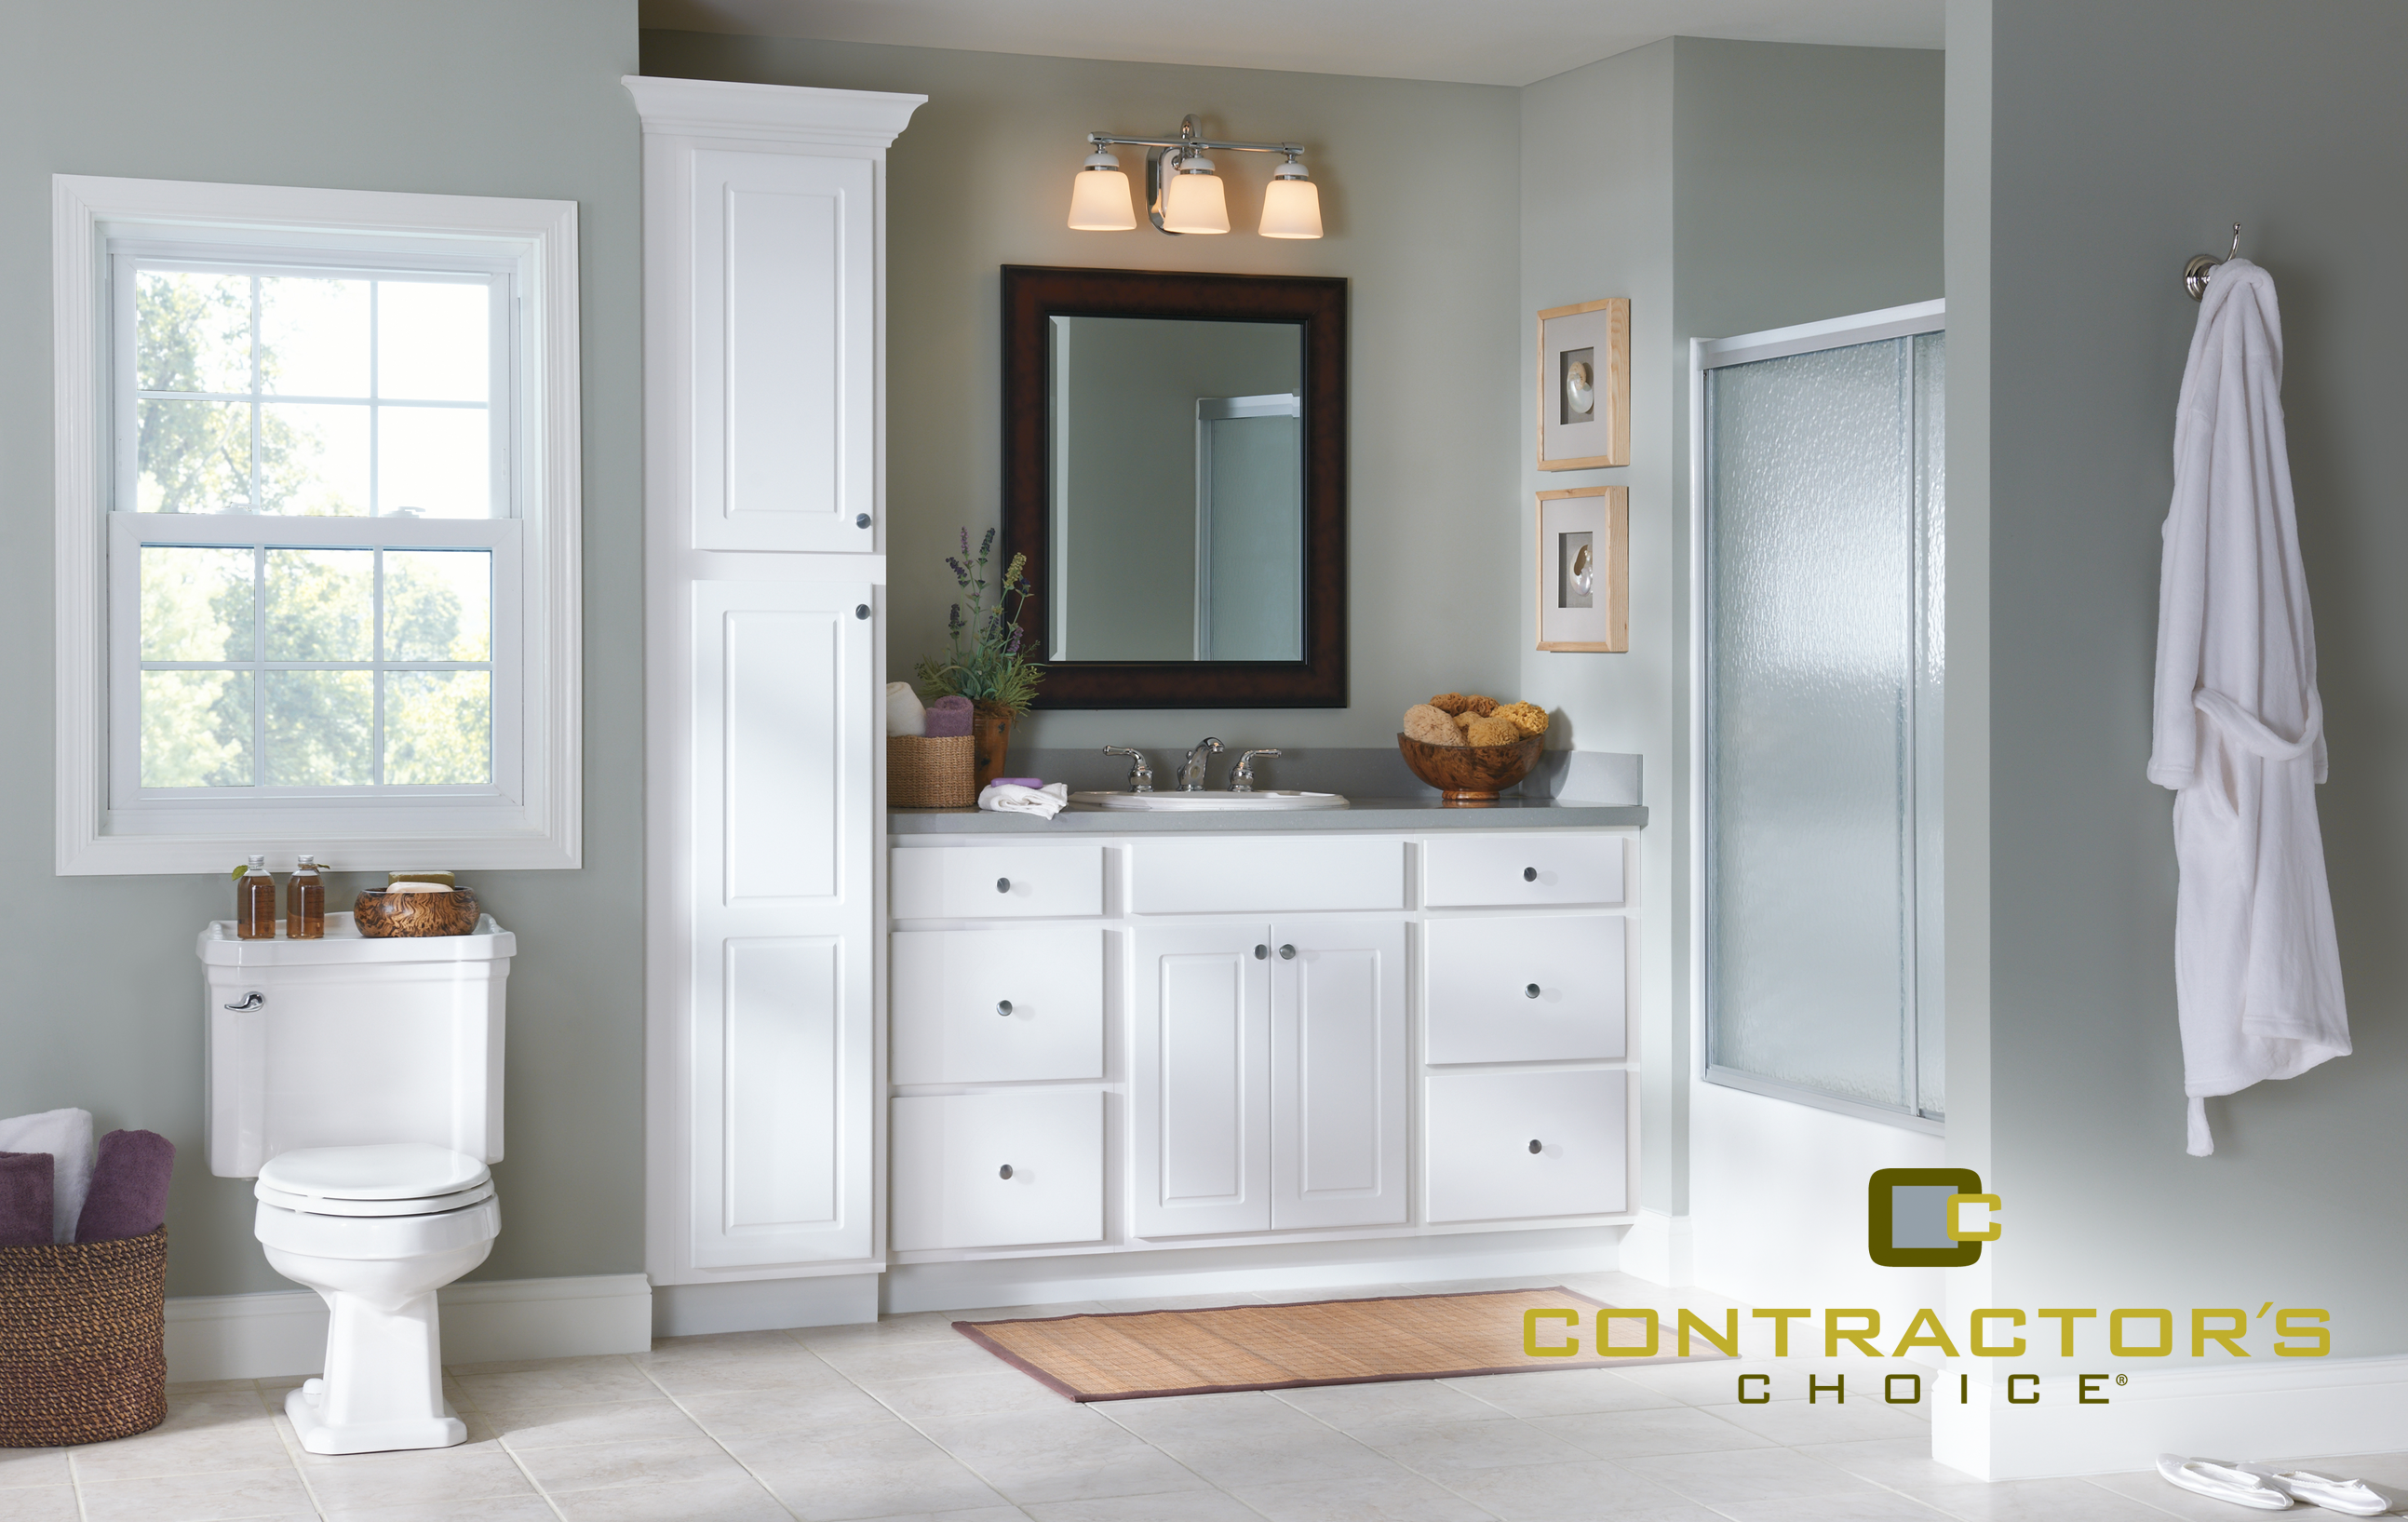 Contractoru0027s Choice Cabinets Are A Complete Range Of Relevant, Affordable  Styles, Providing You Solutions To Confidently Complete Any Project On A  Budget.